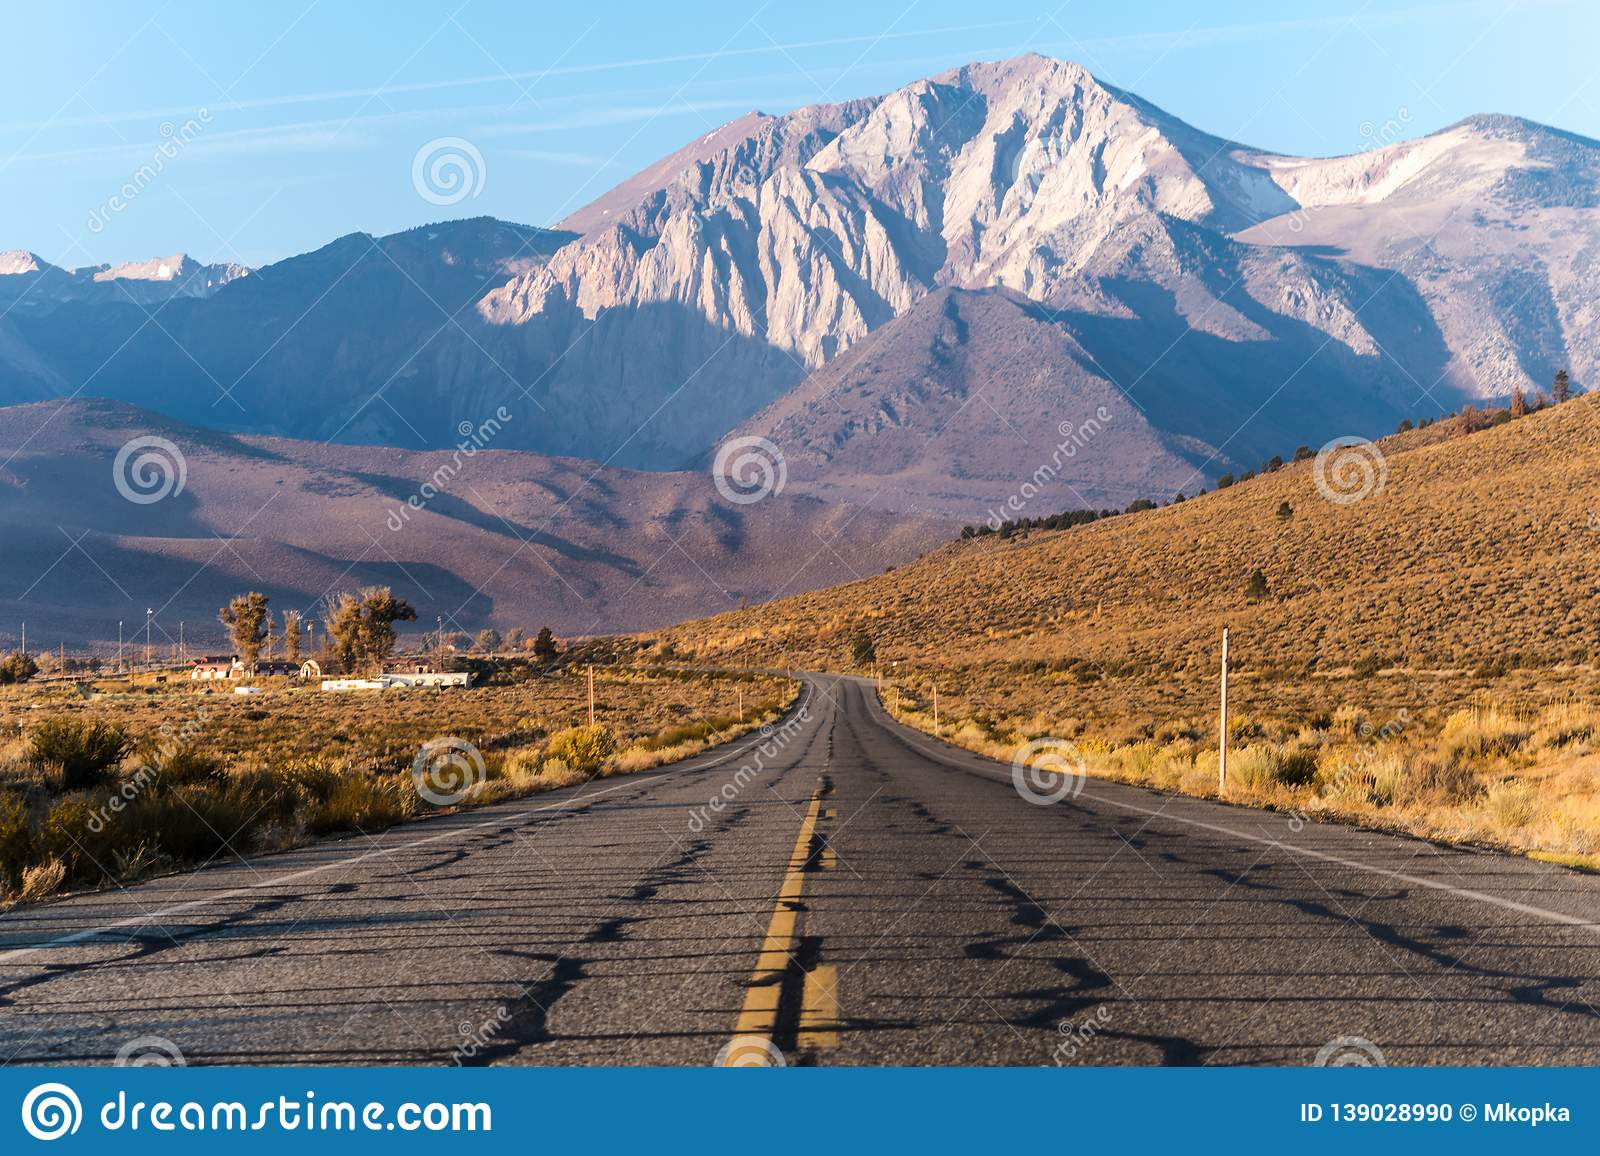 View Of The Eastern Sierra Nevada Mountain Range In California Taken In The Middle Of An Open Road Highway On A Sunny Autumn Stock Photo Image Of Sunny Taken 139028990